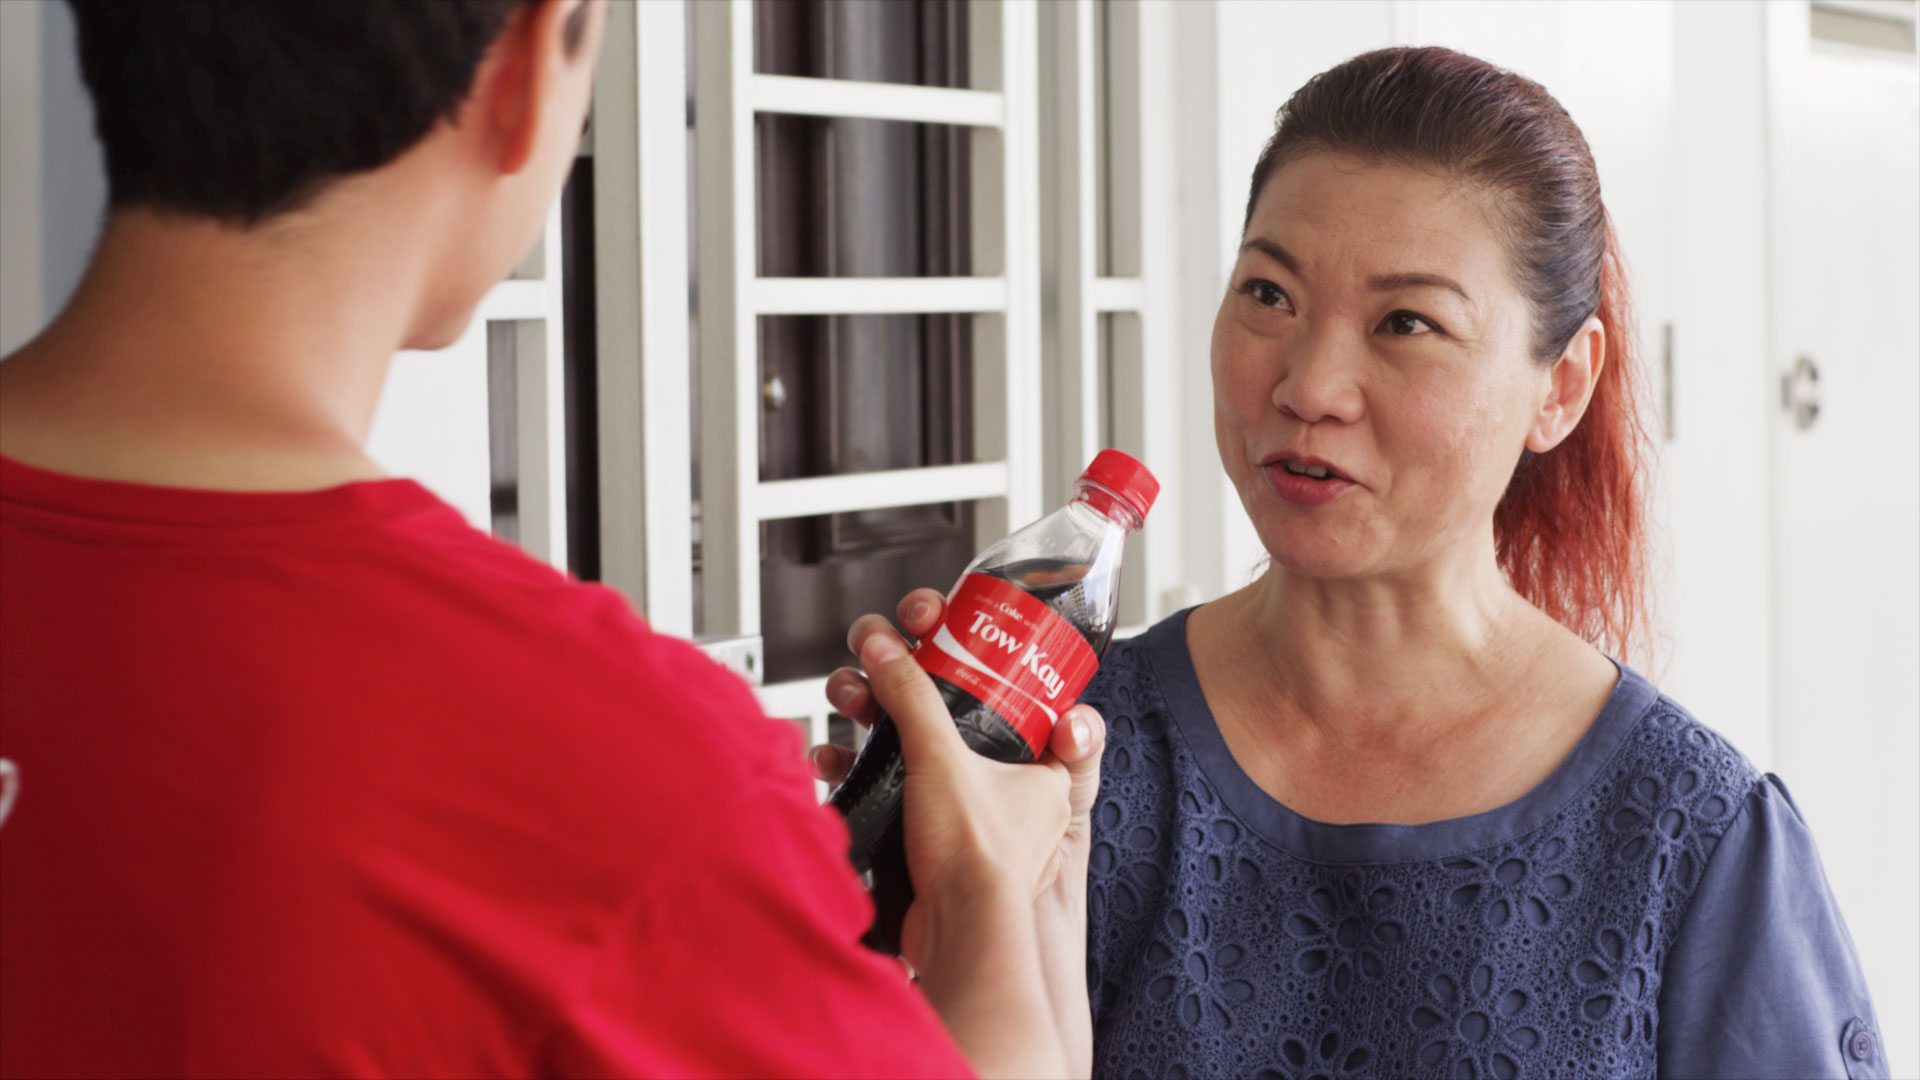 Digital signage content Share a Coke Singapore